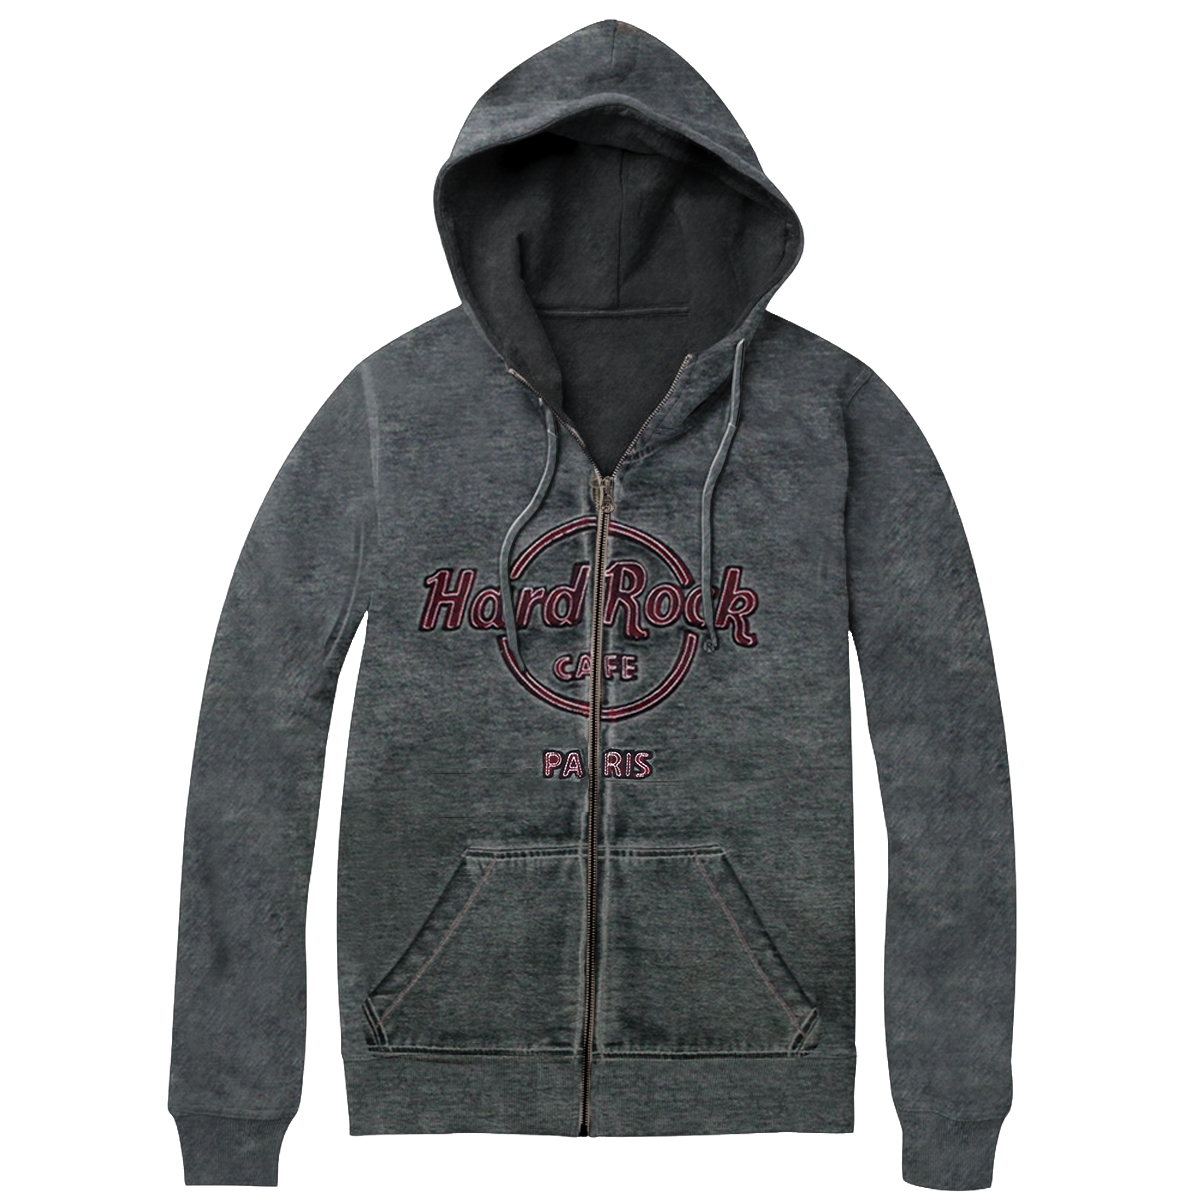 Men's Double Burnout Zip Hood Charcoal, Paris 0